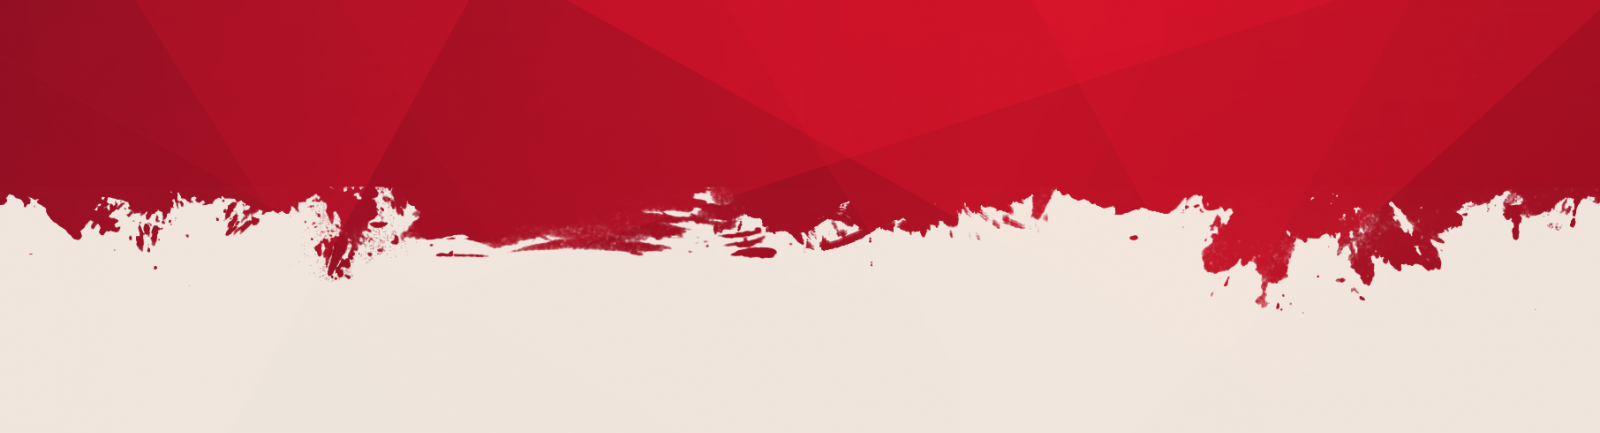 Red and white graphic